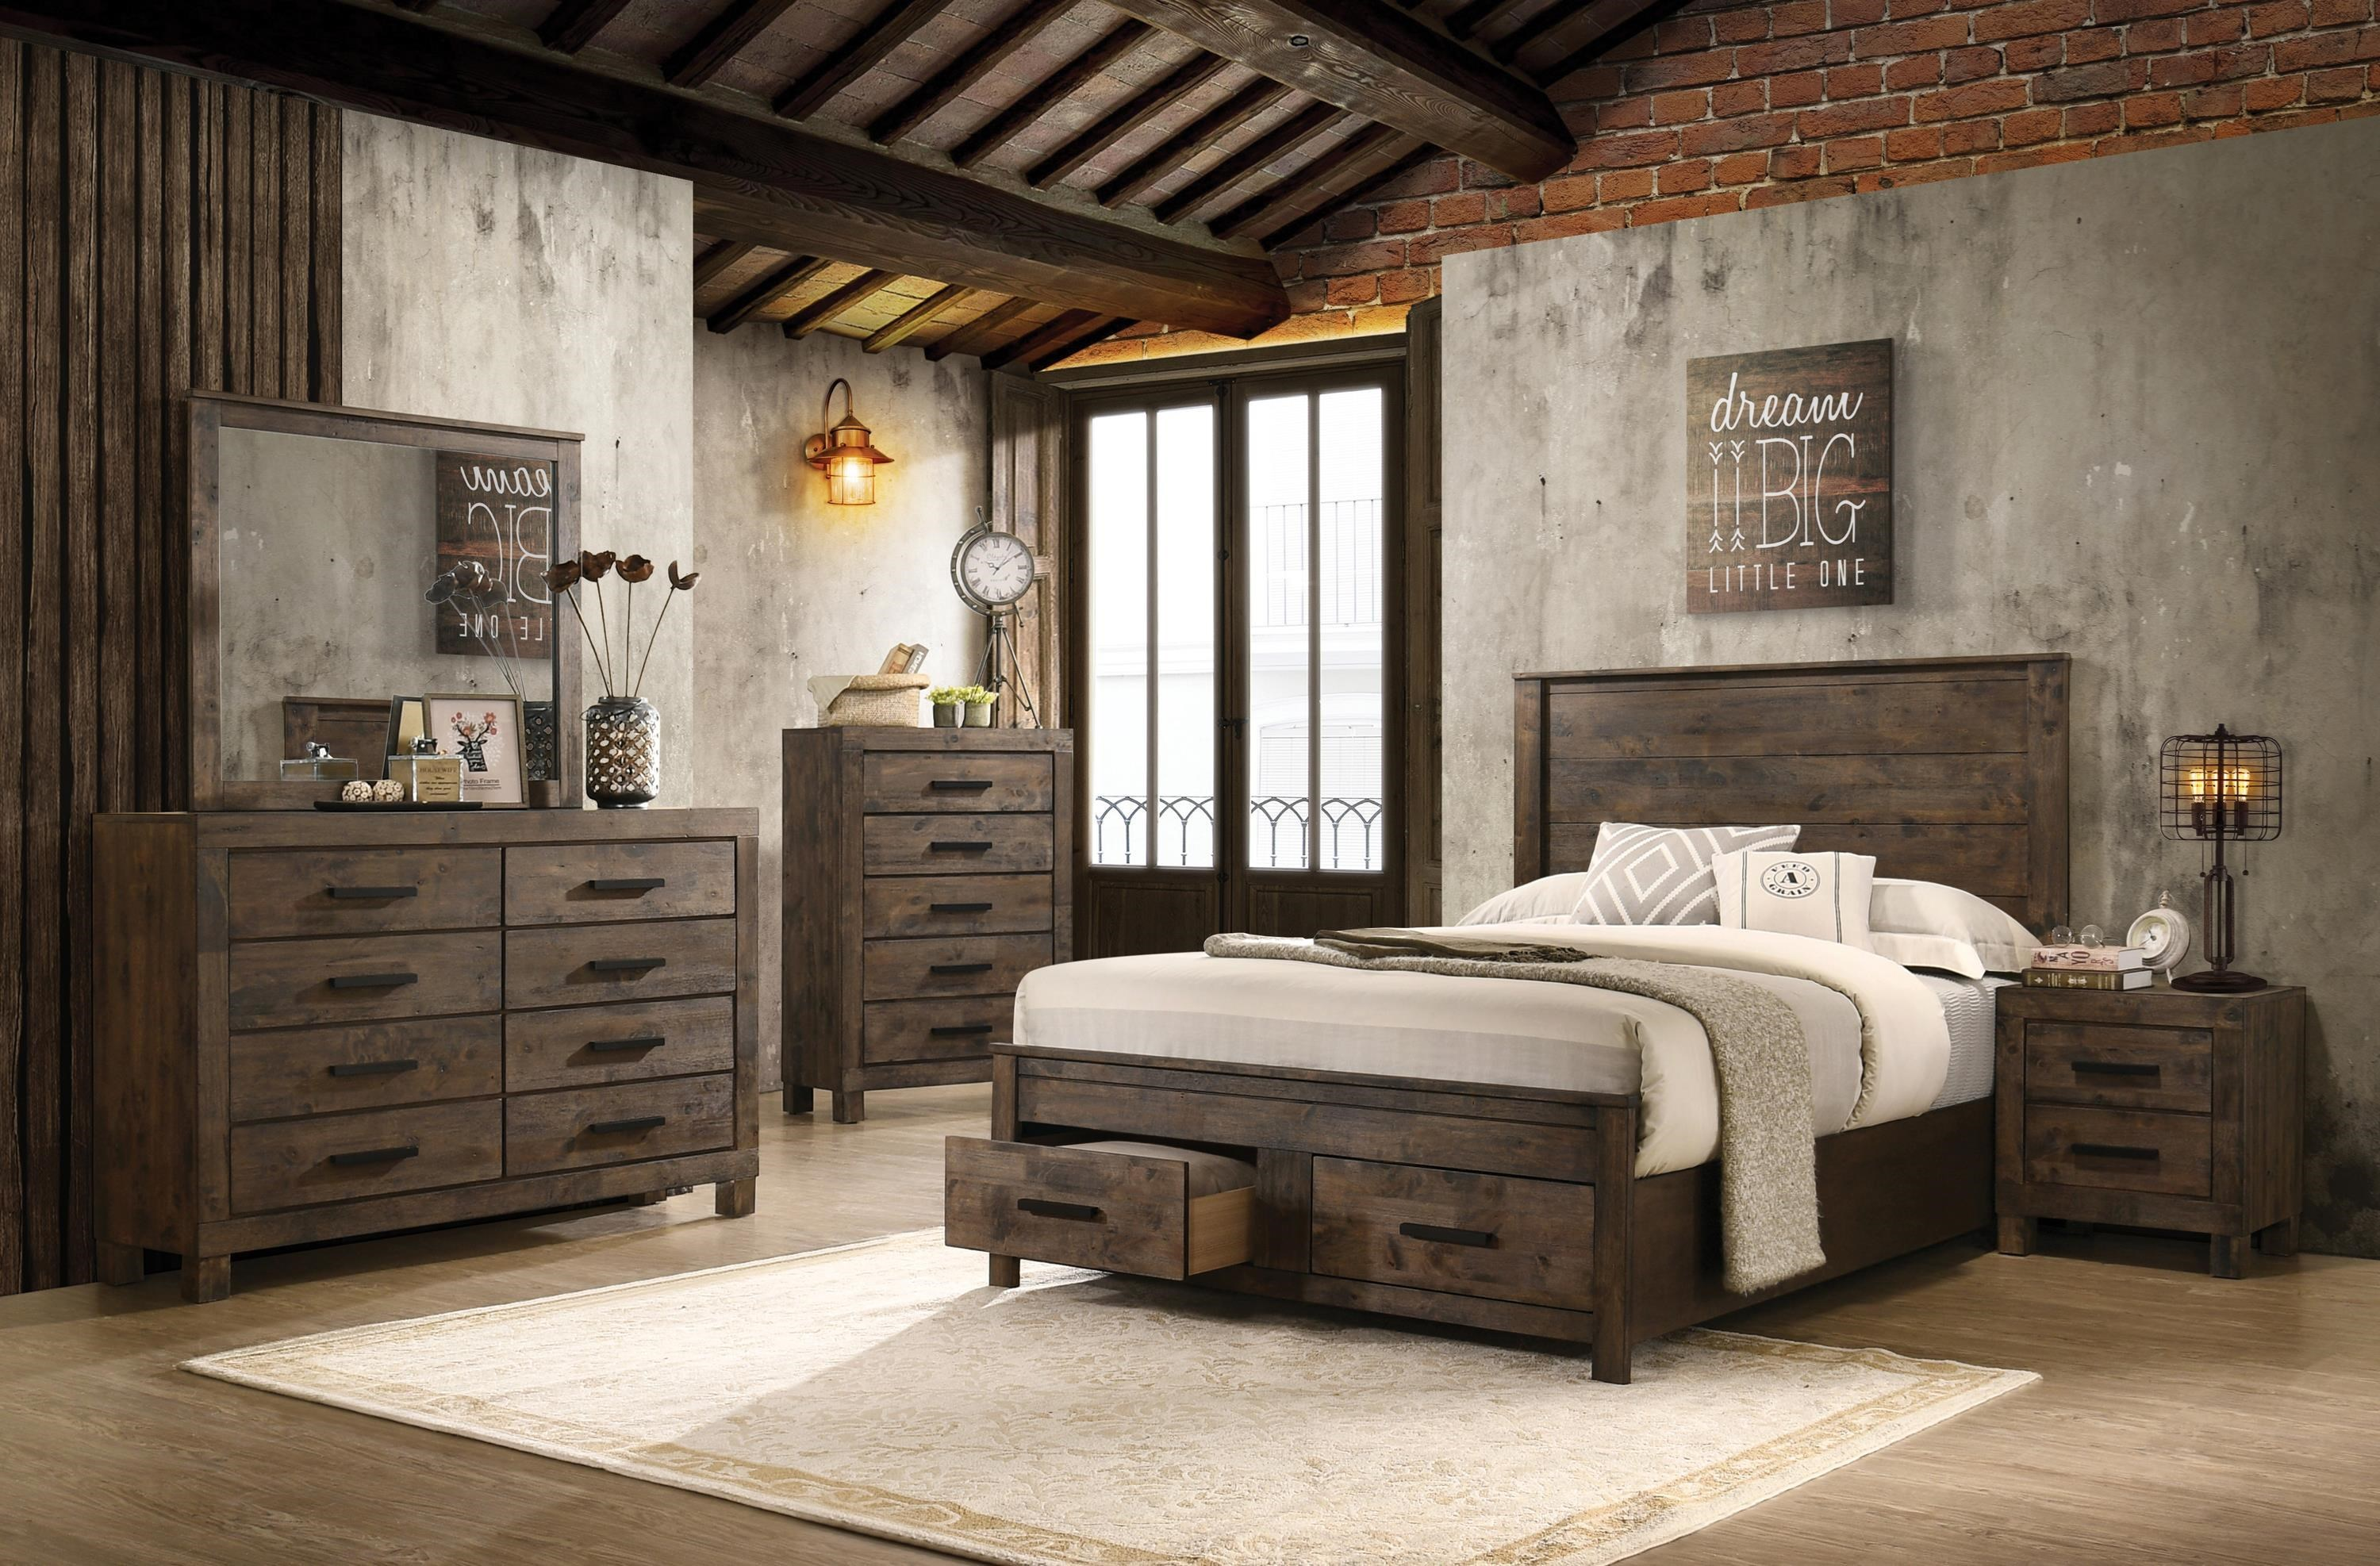 Coaster Rustic Brown 222631qb 2 3 4 5 7 Piece Queen Bedroom Set Sam Levitz Furniture Bedroom Groups